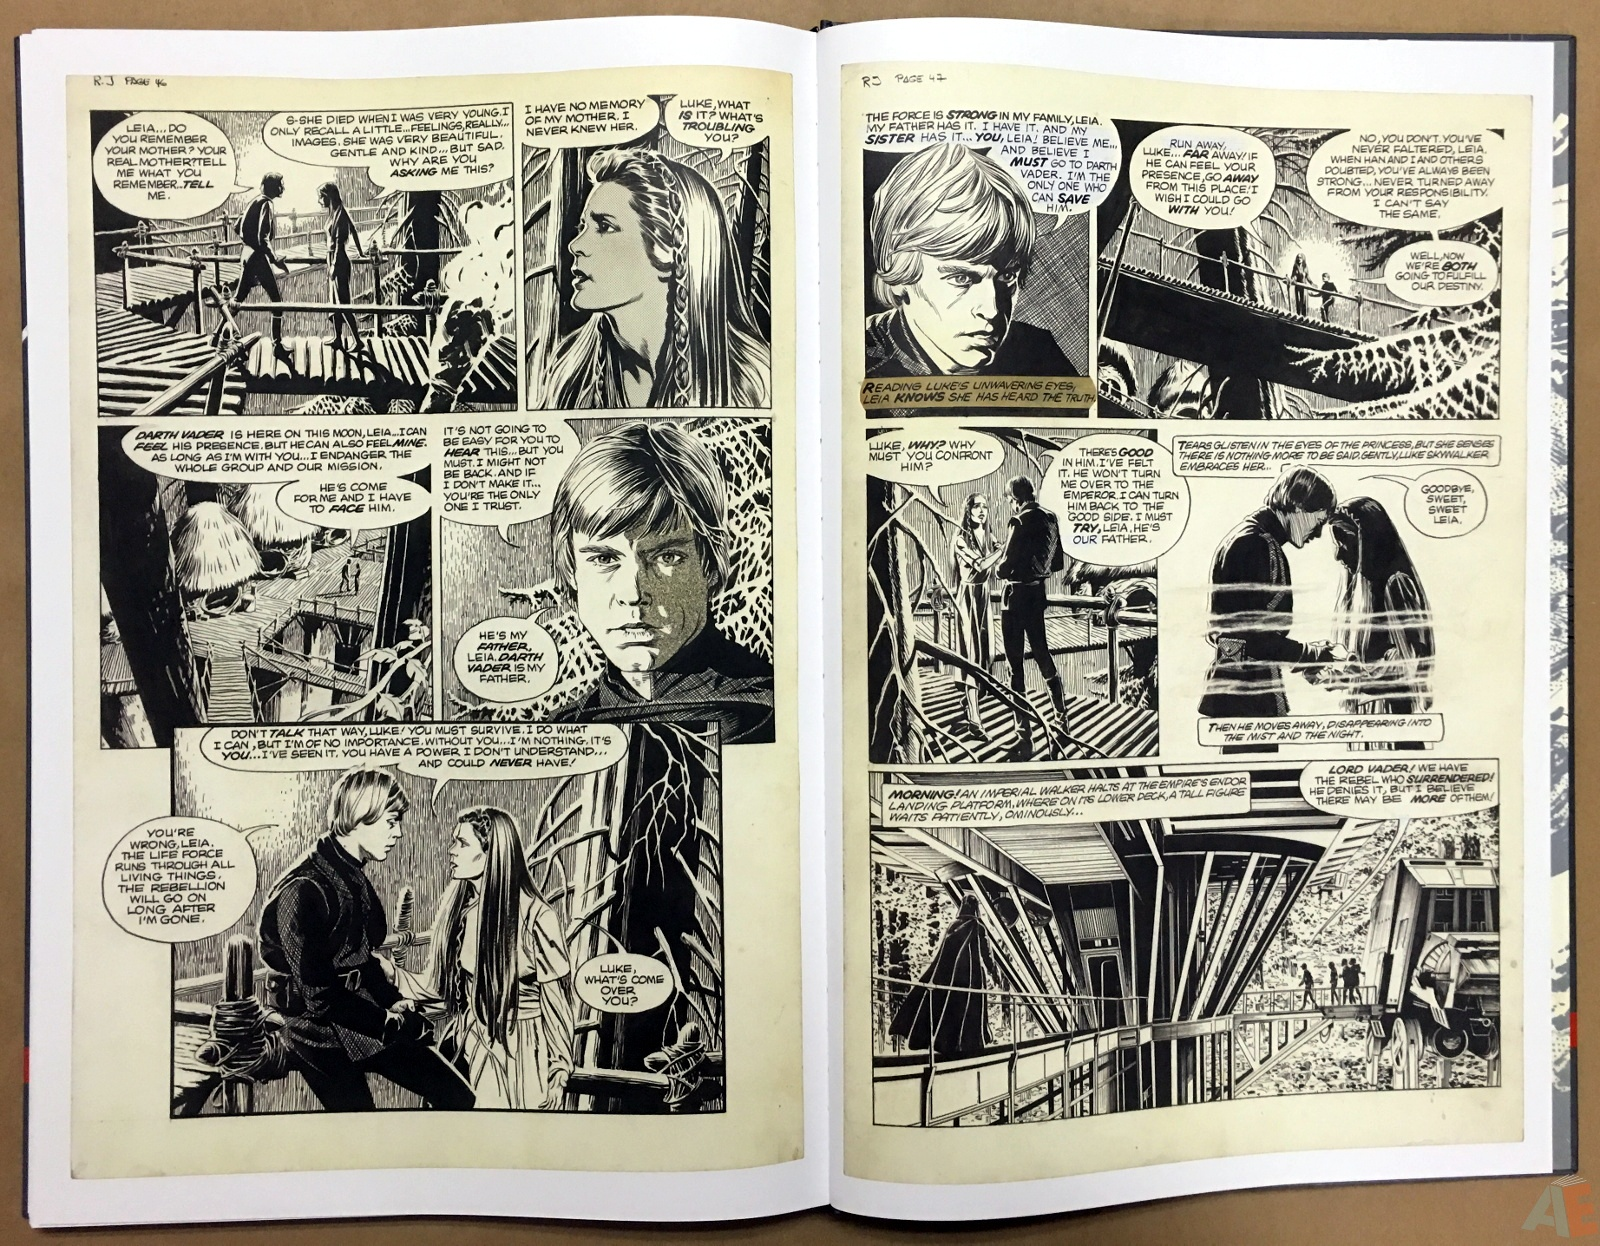 Al Williamson's Star Wars: The Empire Strikes Back Artist's Edition 50